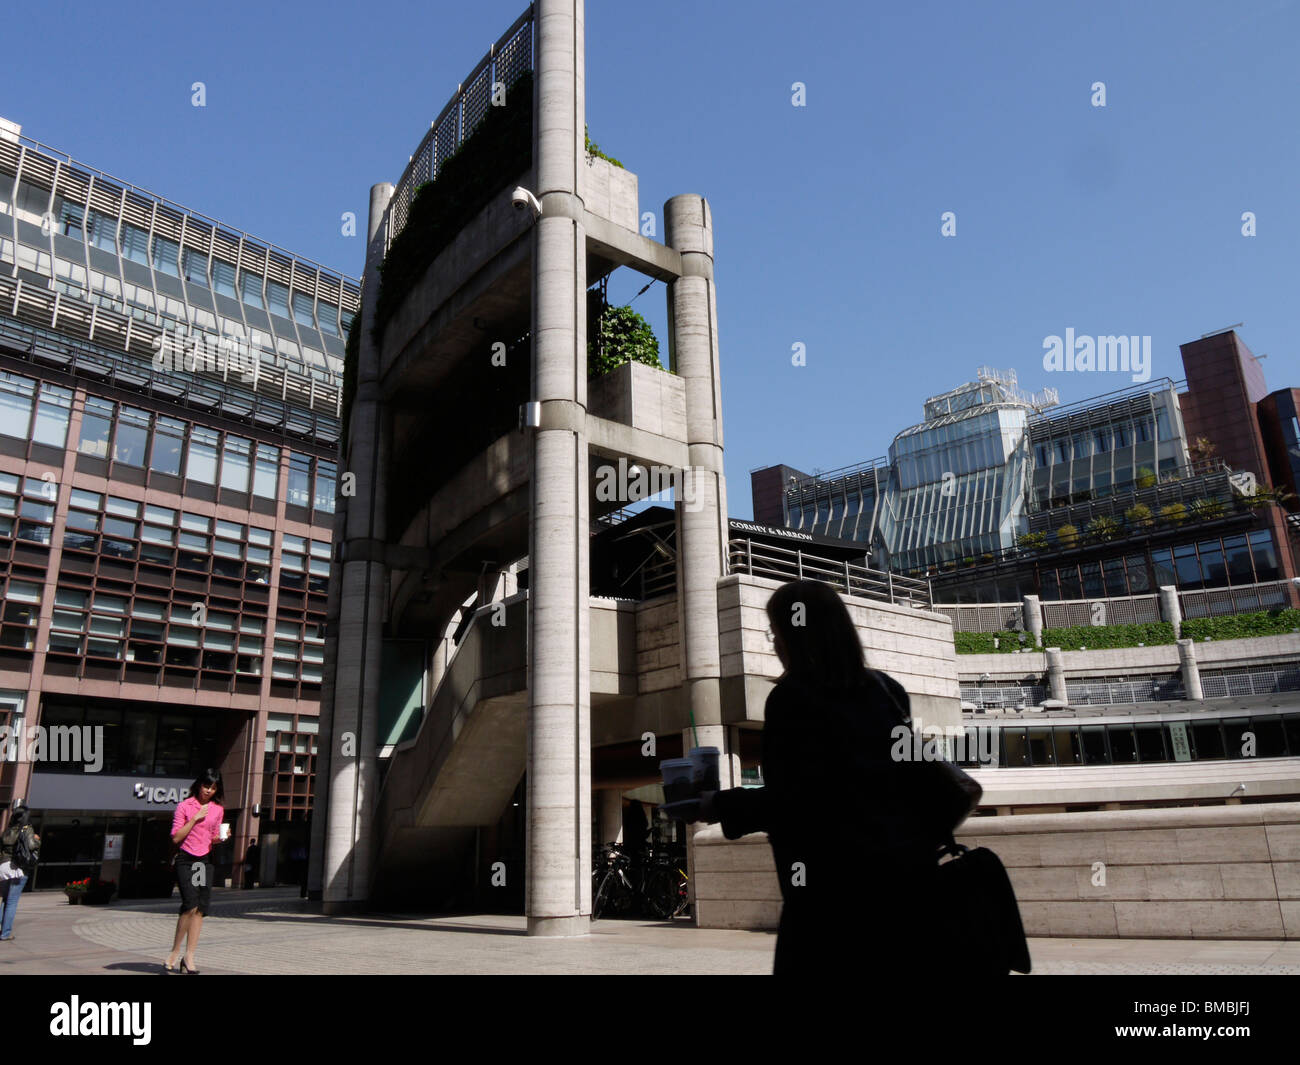 Broadgate office complex, London - Stock Image